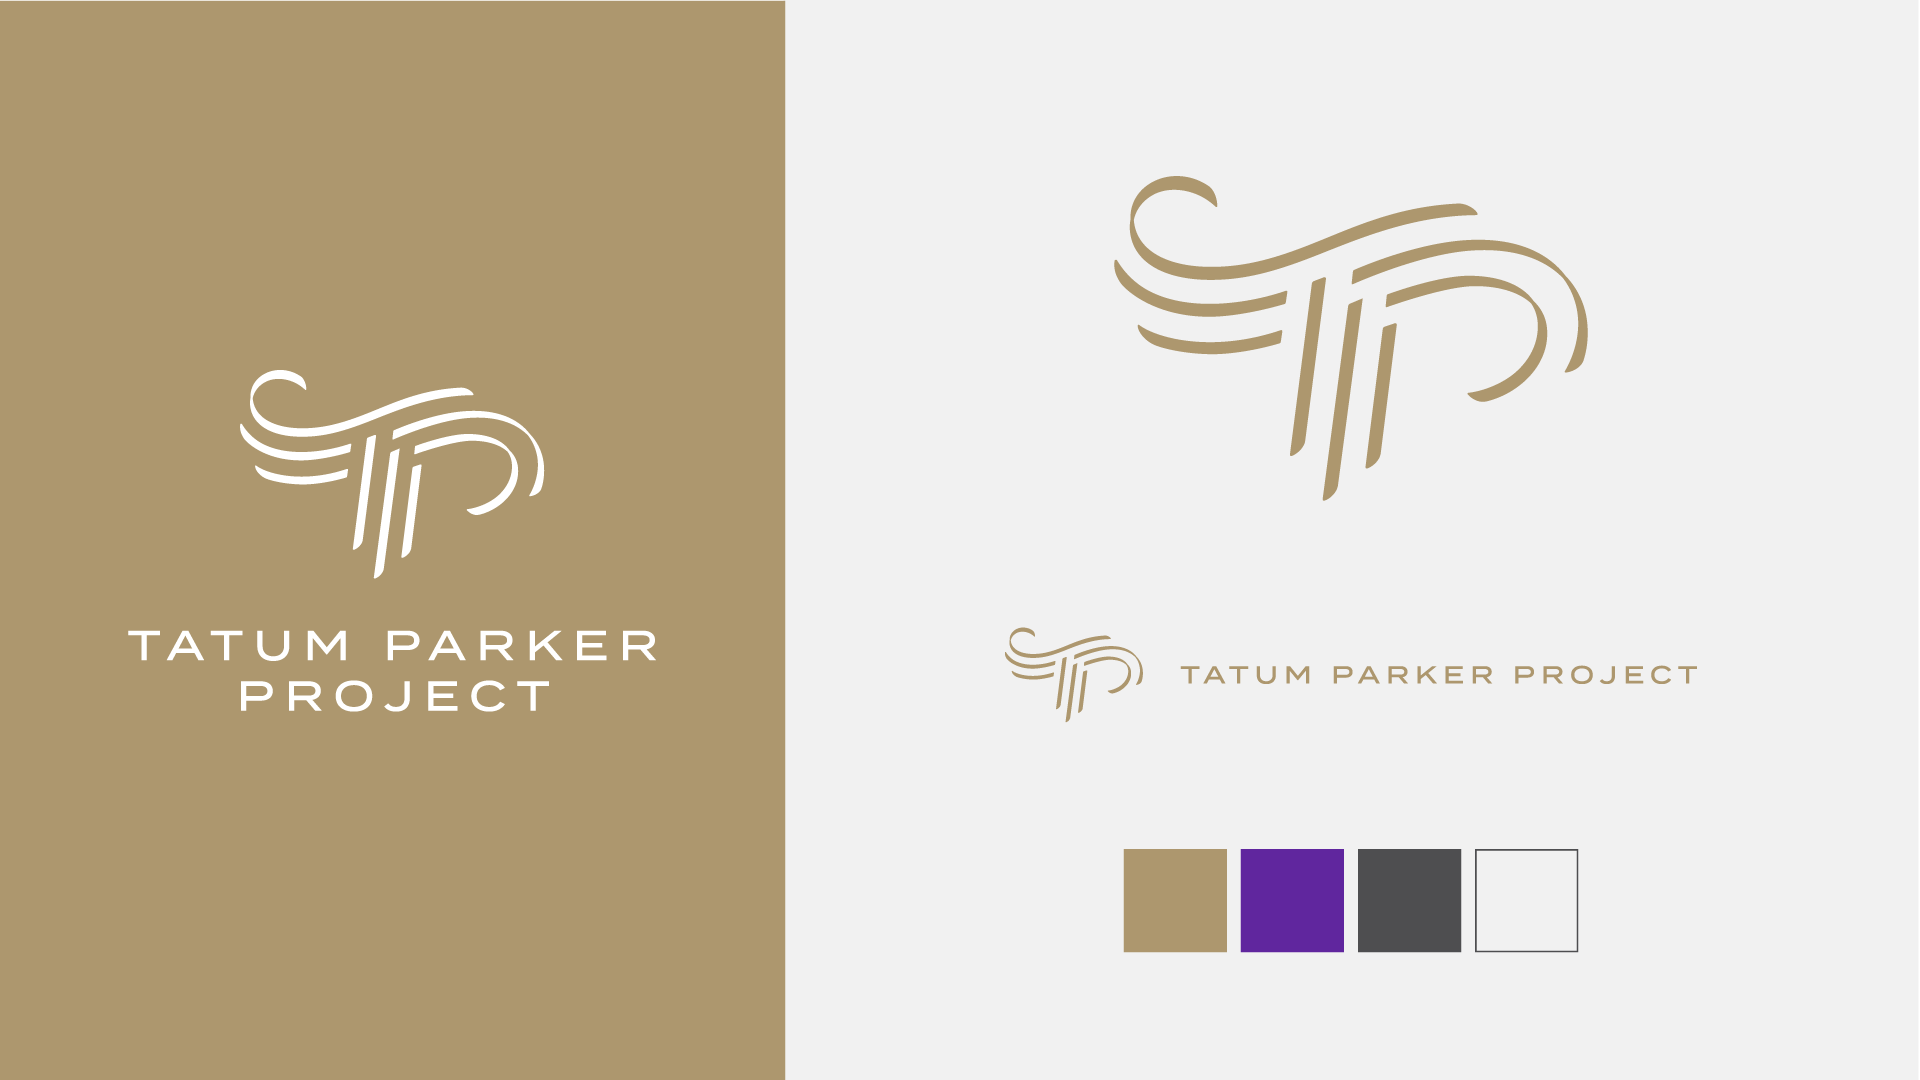 Tatum Parker Project Brand Elements